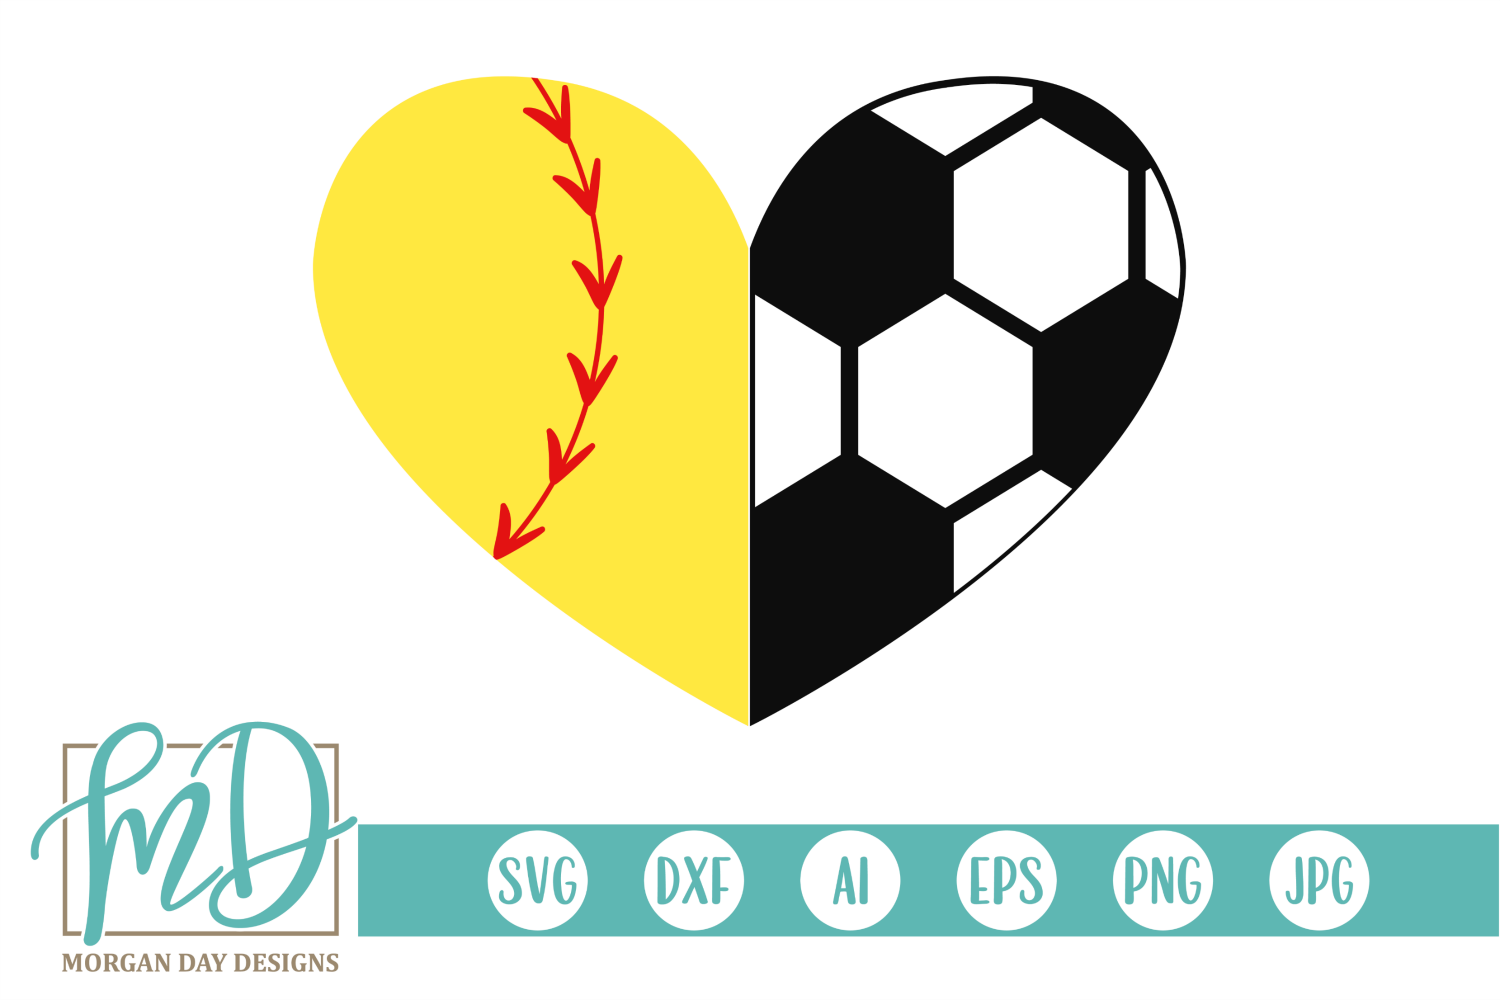 Download Free Softball Soccer Heart Svg Graphic By Morgan Day Designs for Cricut Explore, Silhouette and other cutting machines.